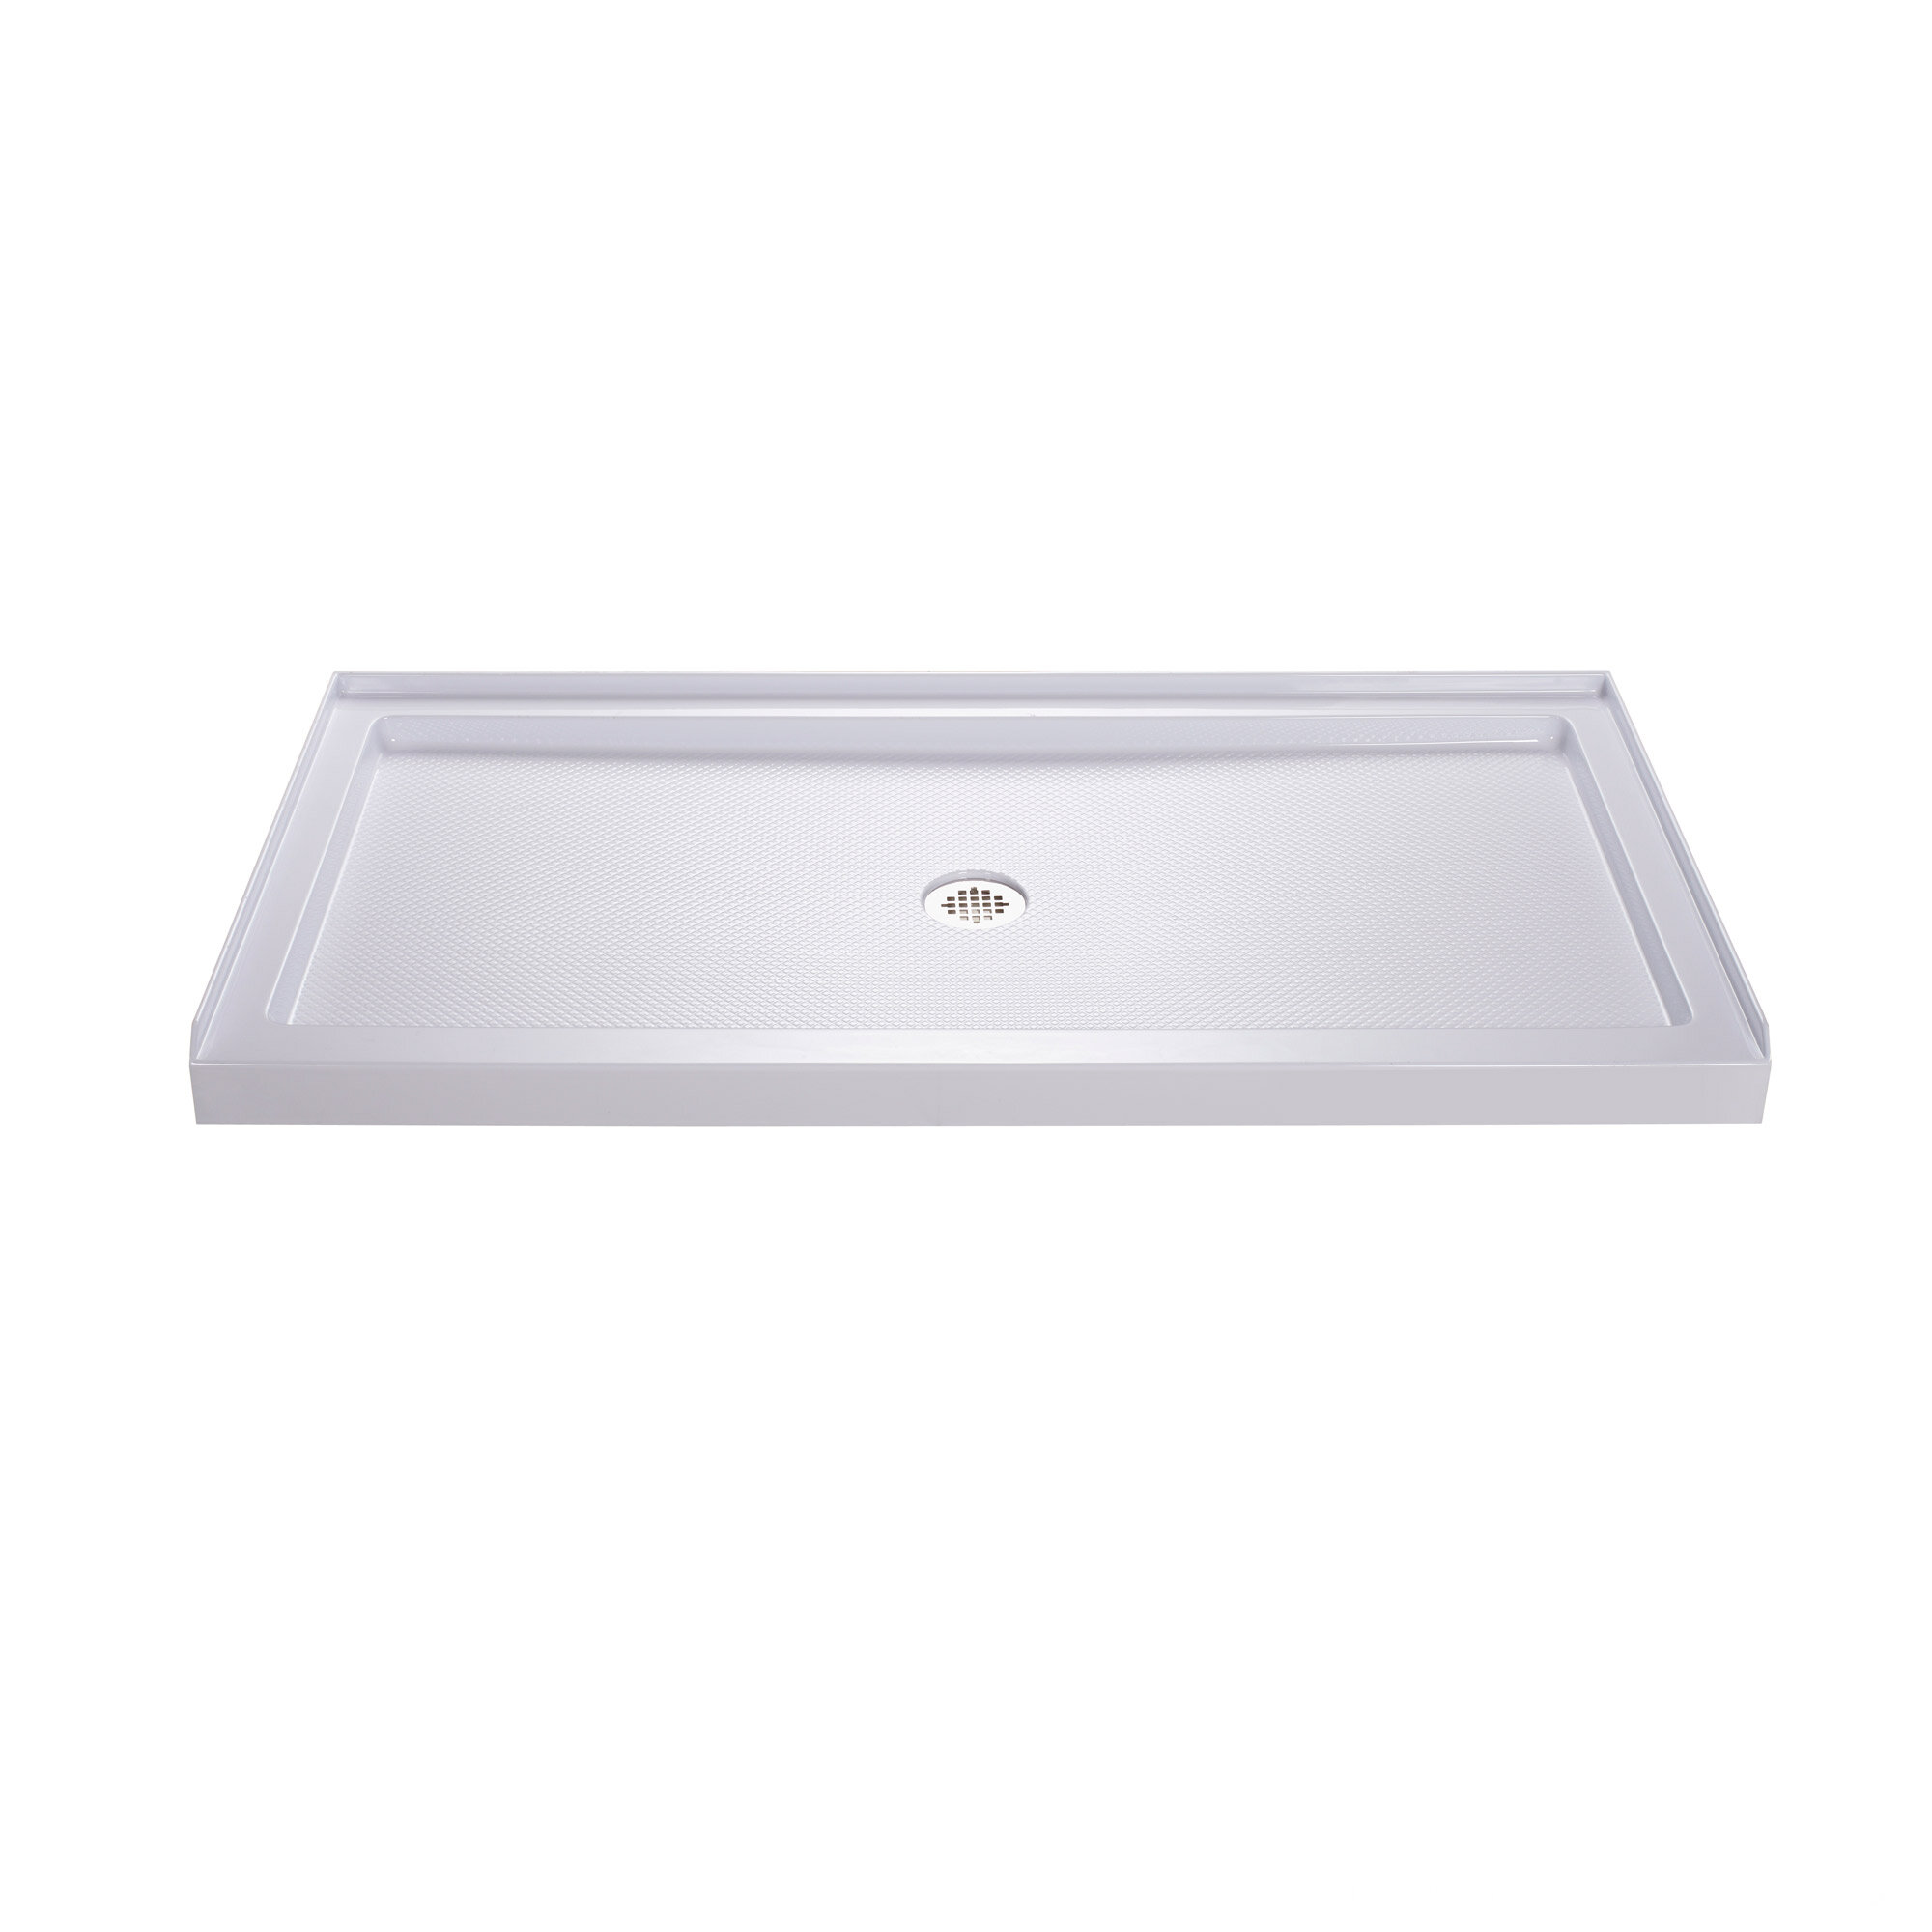 H Right Drain Acrylic Shower Base And QWALL 5 Backwall Kit In White |  Wayfair